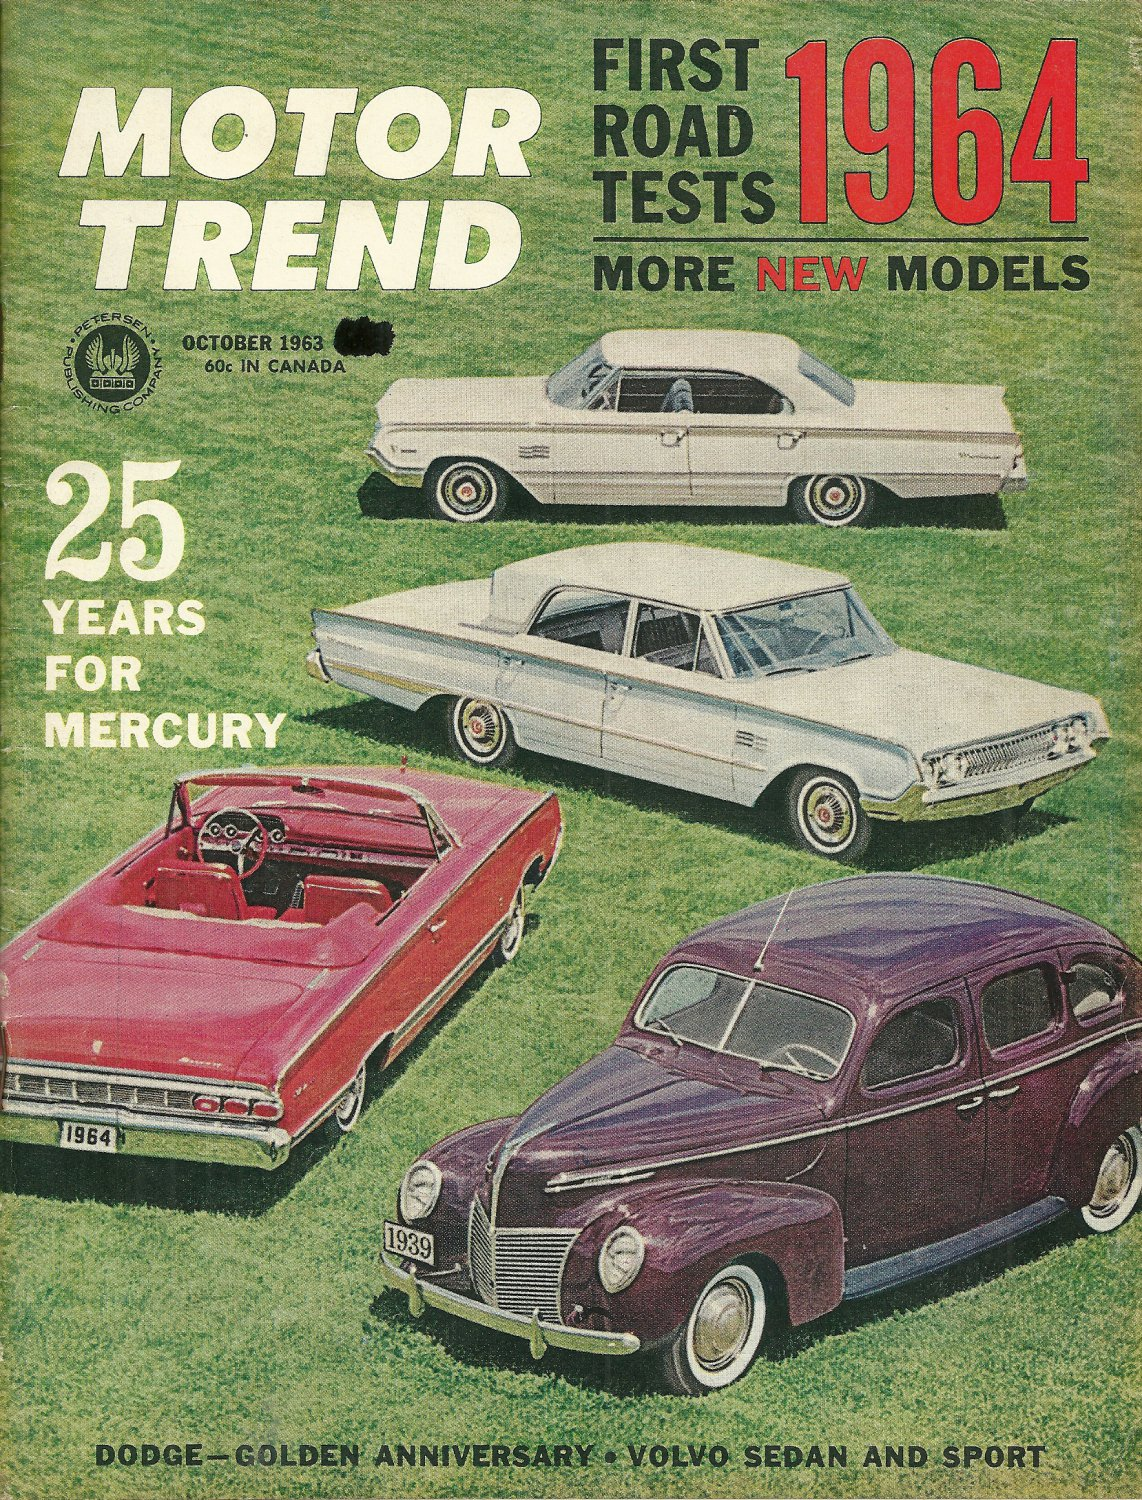 MOTOR TREND MAGAZINE October 1963 First 1964 Road Tests VOLVO 122-S and P1800S